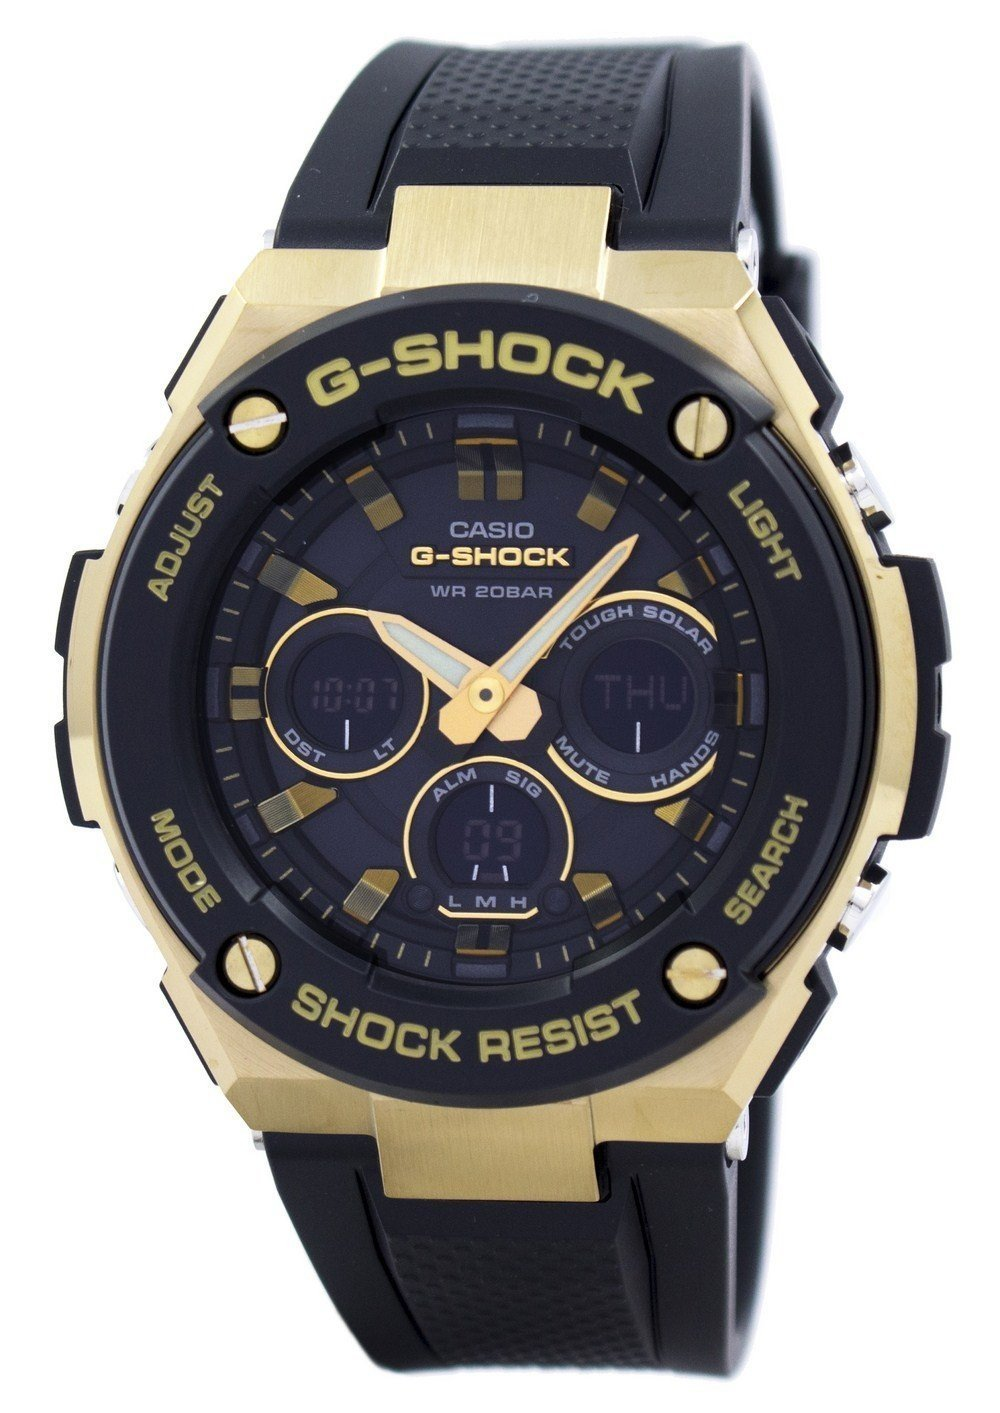 Casio G-Shock Tough Solar Shock Resistant Alarm GST-S300G-1A9 Men's Watch